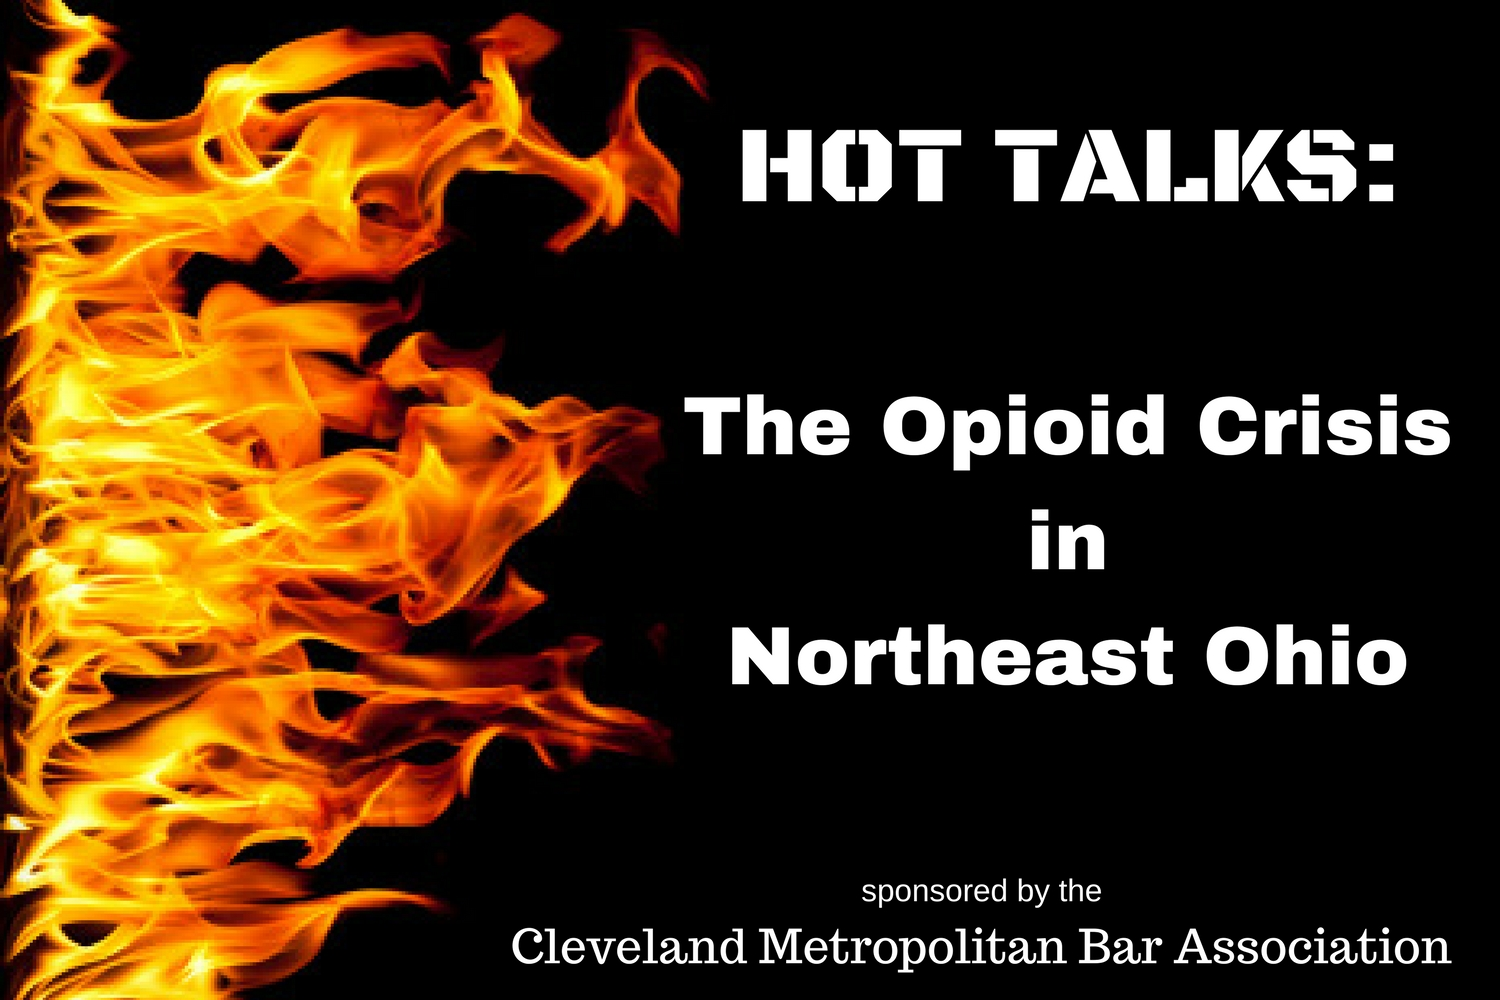 Hot Talks: The Opioid Crisis in Northeast Ohio